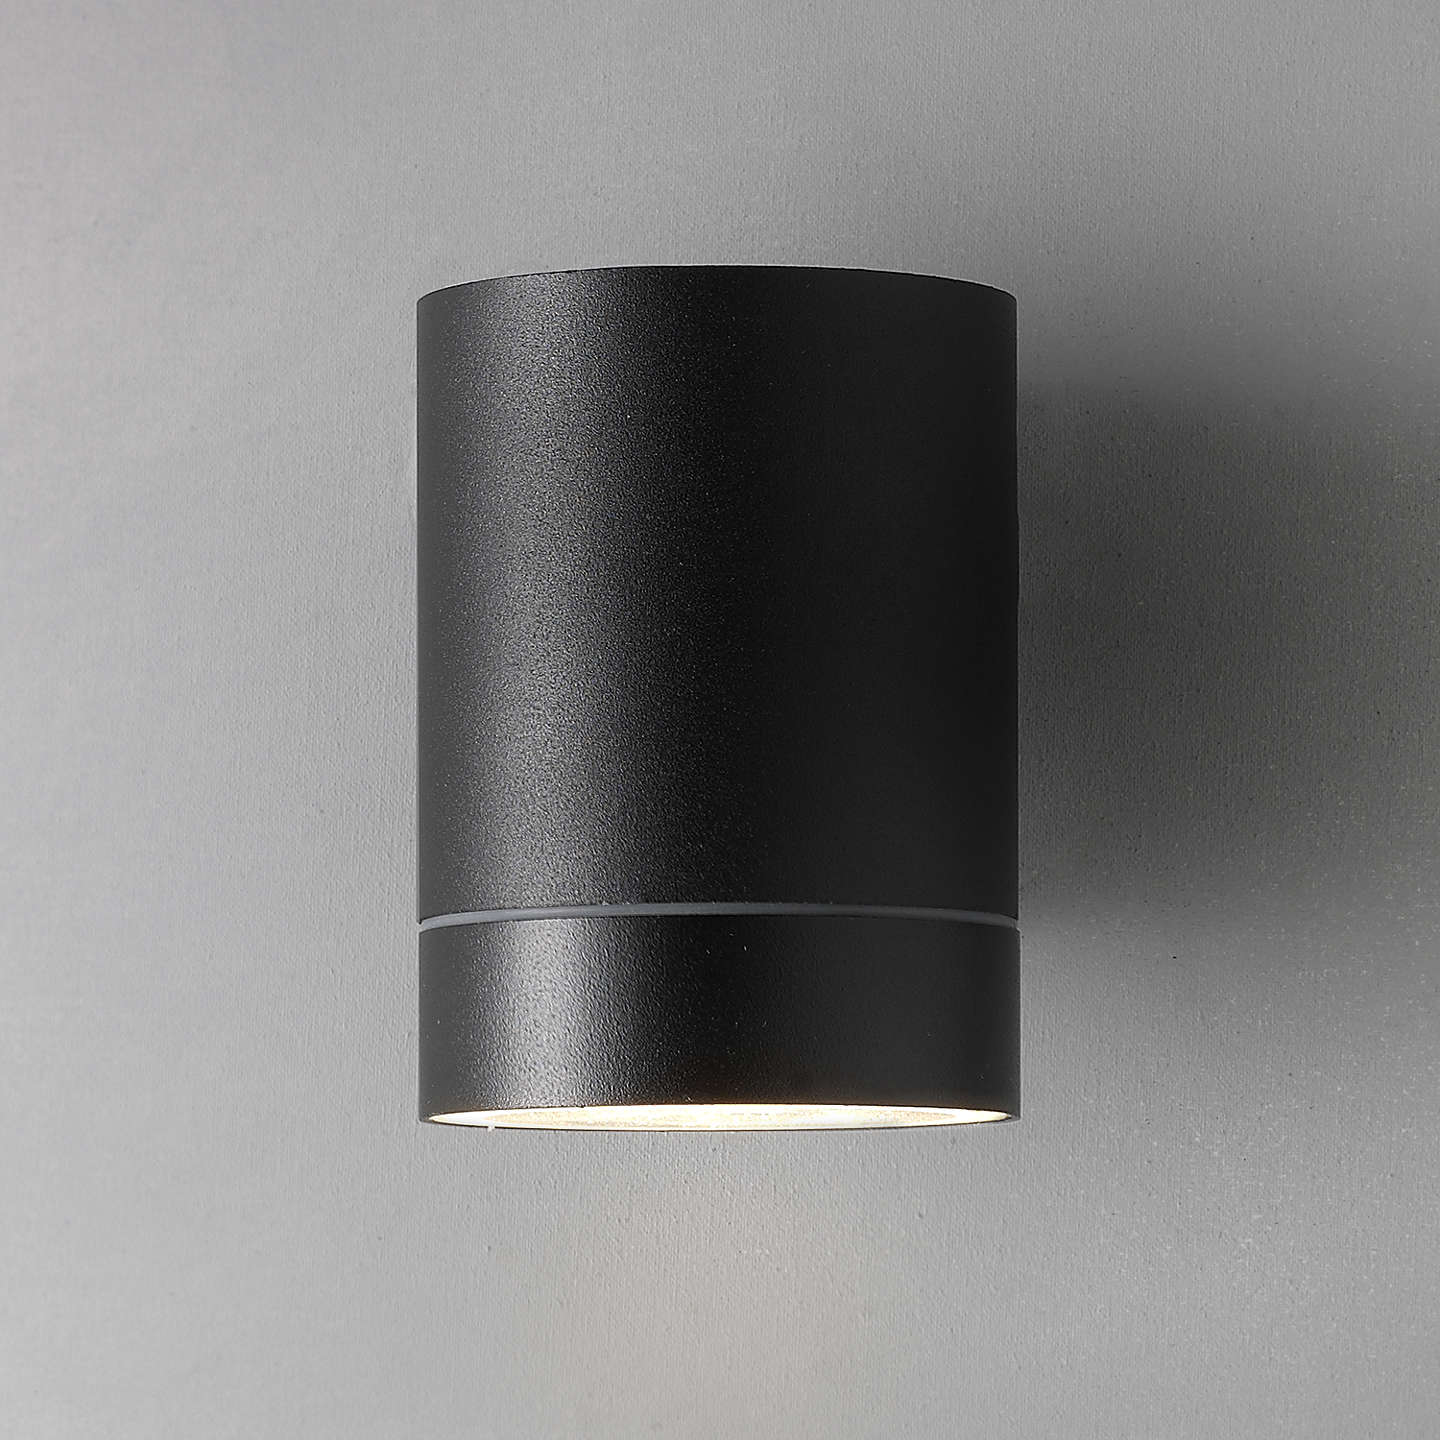 Nordlux tin maxi outdoor wall light black at john lewis buynordlux tin maxi outdoor wall light black online at johnlewis mozeypictures Gallery